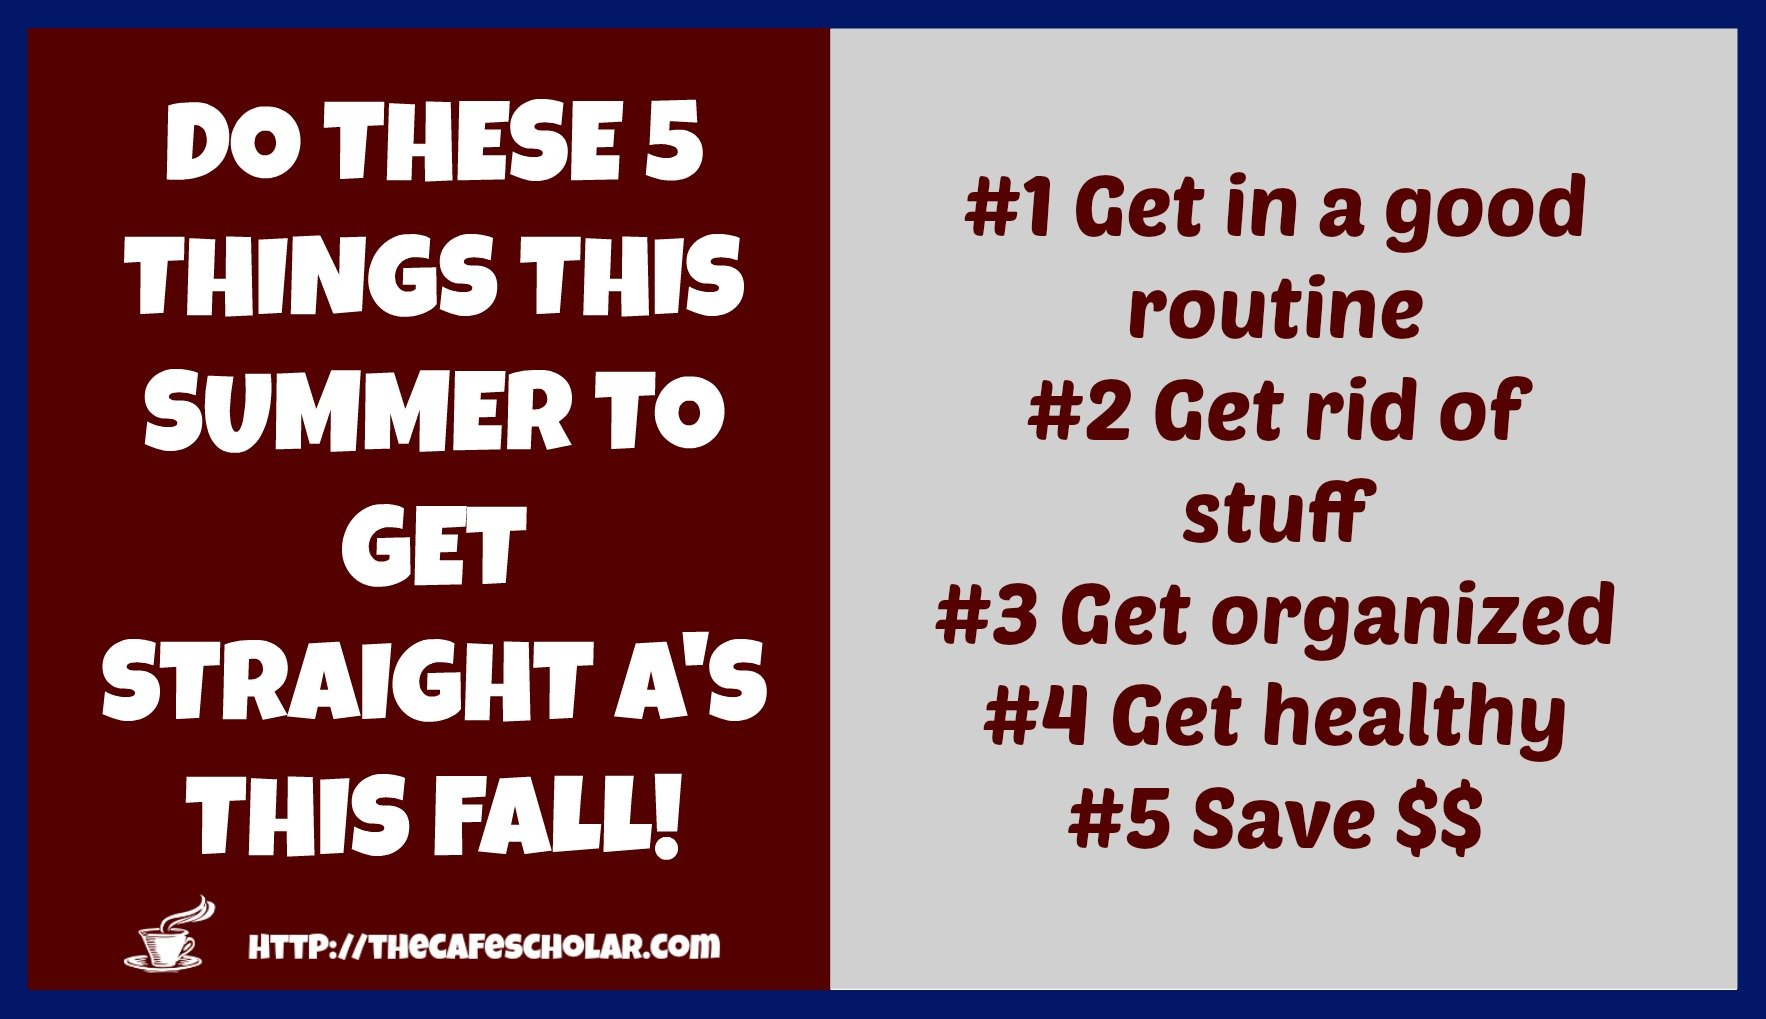 Do These 5 Things This Summer to Get Straight A's This Fall!